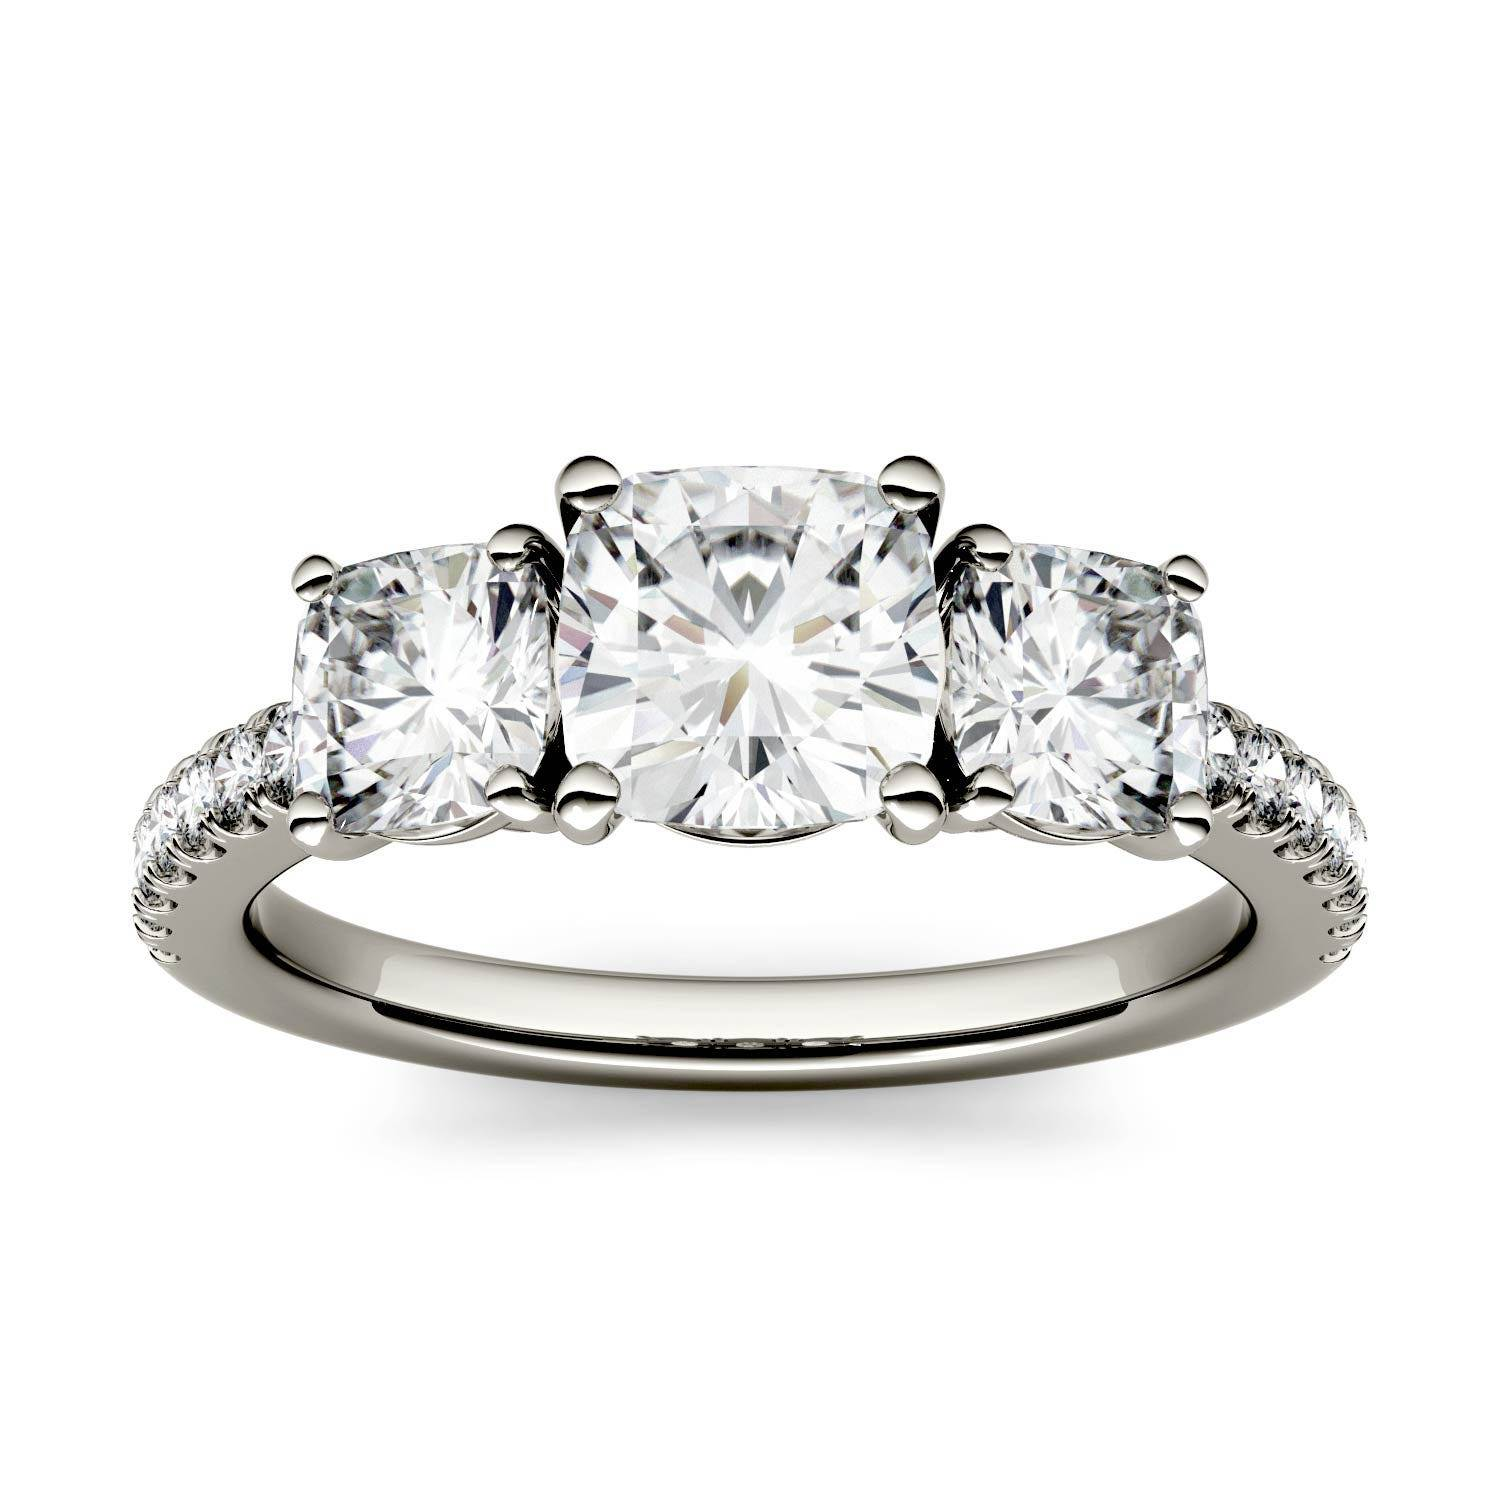 Charles & Colvard Three Stone with Side Accents Engagement Ring in 14K White Gold, Size: 8, 2.24CTW Cushion Forever One - Colorless Moissanite Charles & Colvard  - White Gold - Size: 8